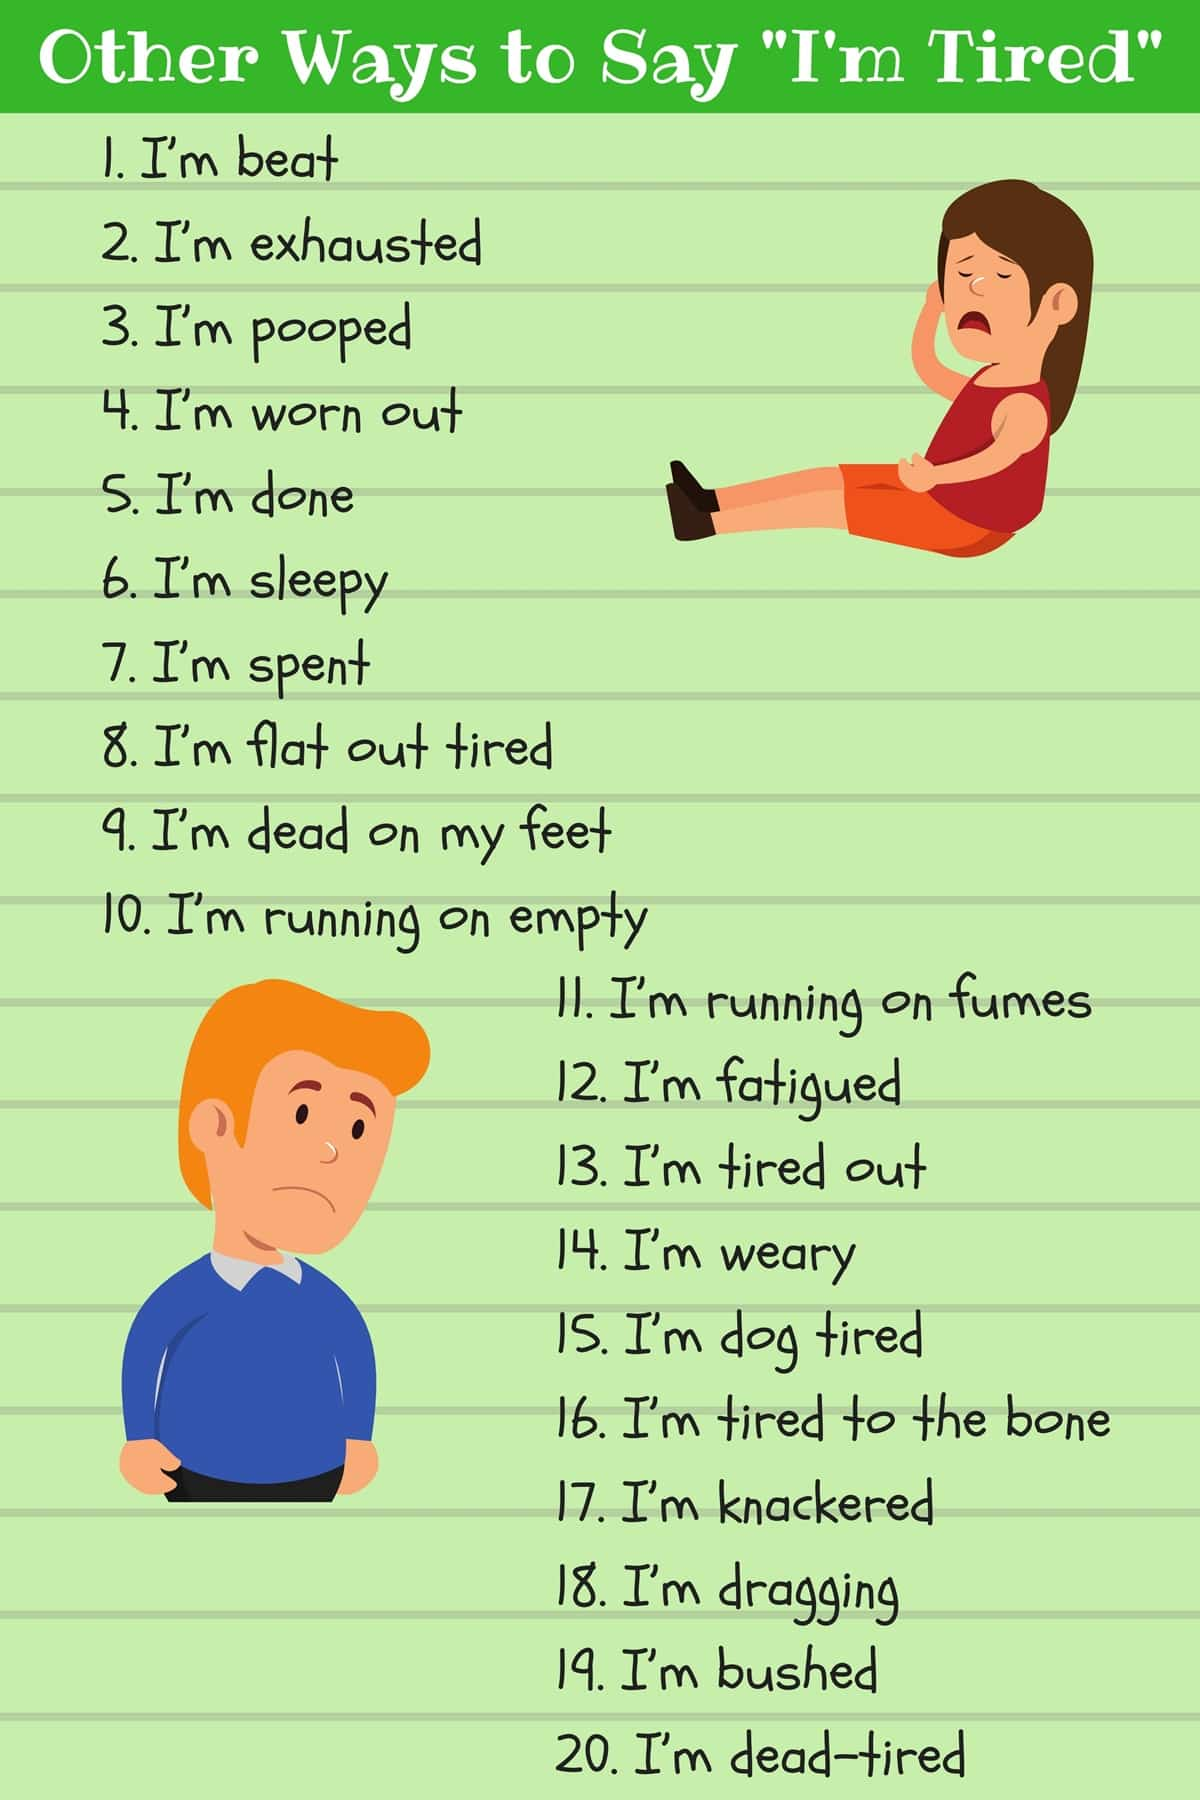 Different Ways to Say I'm Tired